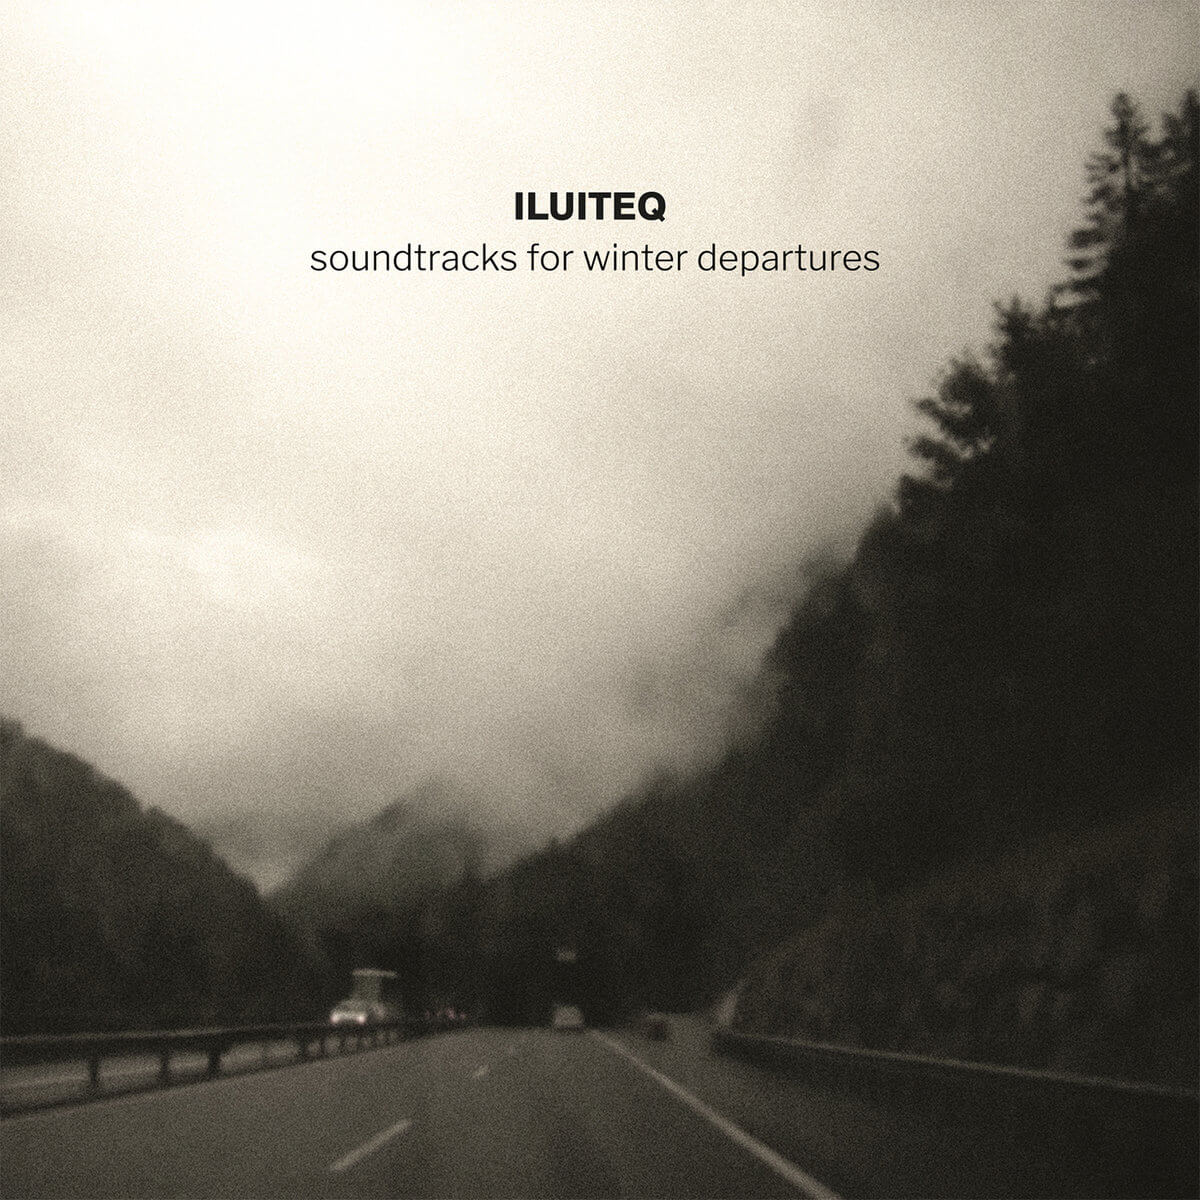 iluiteq soundtracks for winter departures CD